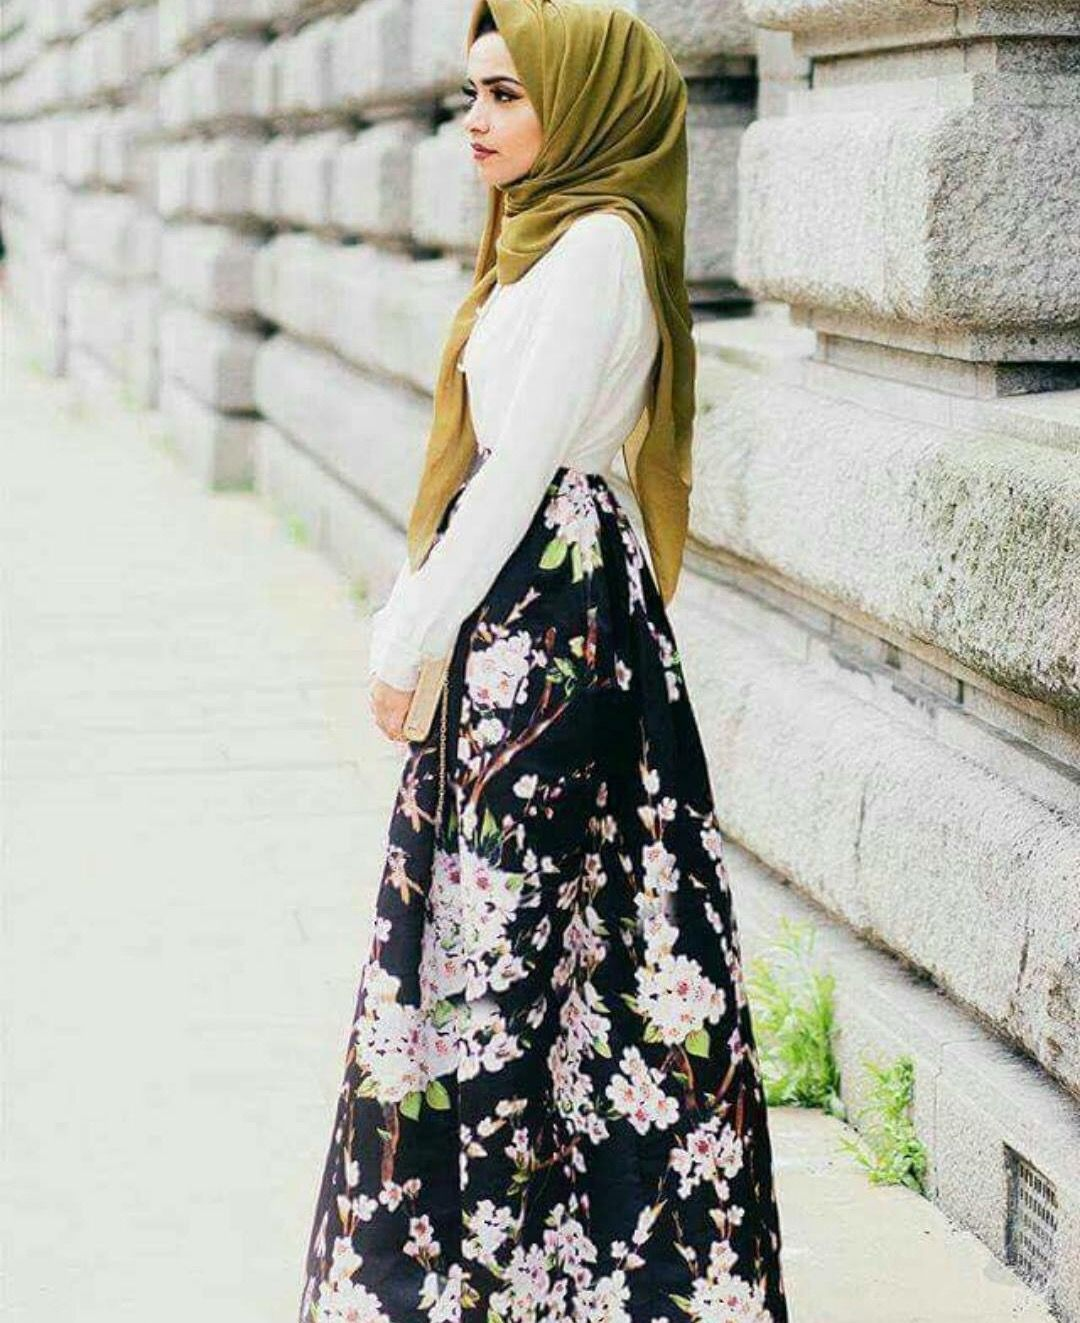 Hijab Style Clothing Chic Pinterest Hijab Outfit